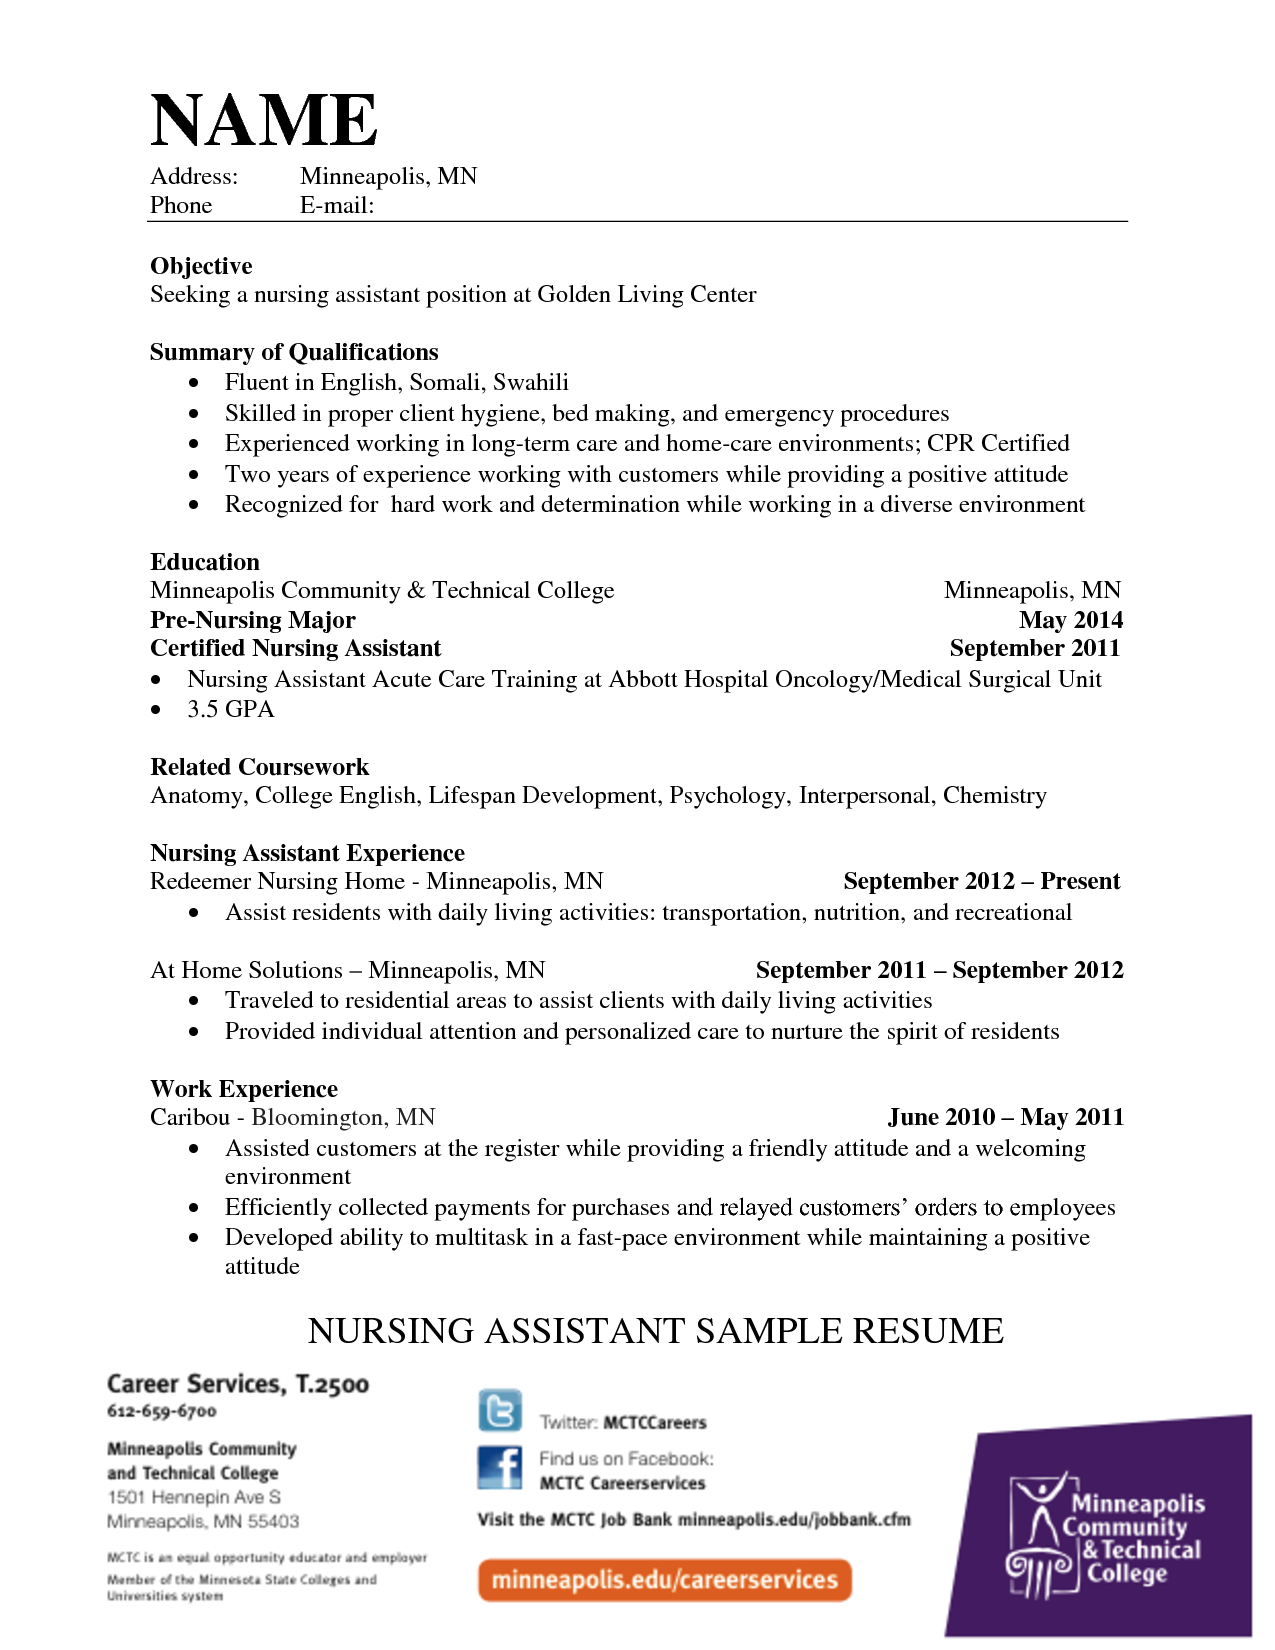 Example Application Letter For Nursing Assistant Cna Job Resume Cover  Happytom Waitress Skills Waitressing  Cna Job Description Resume